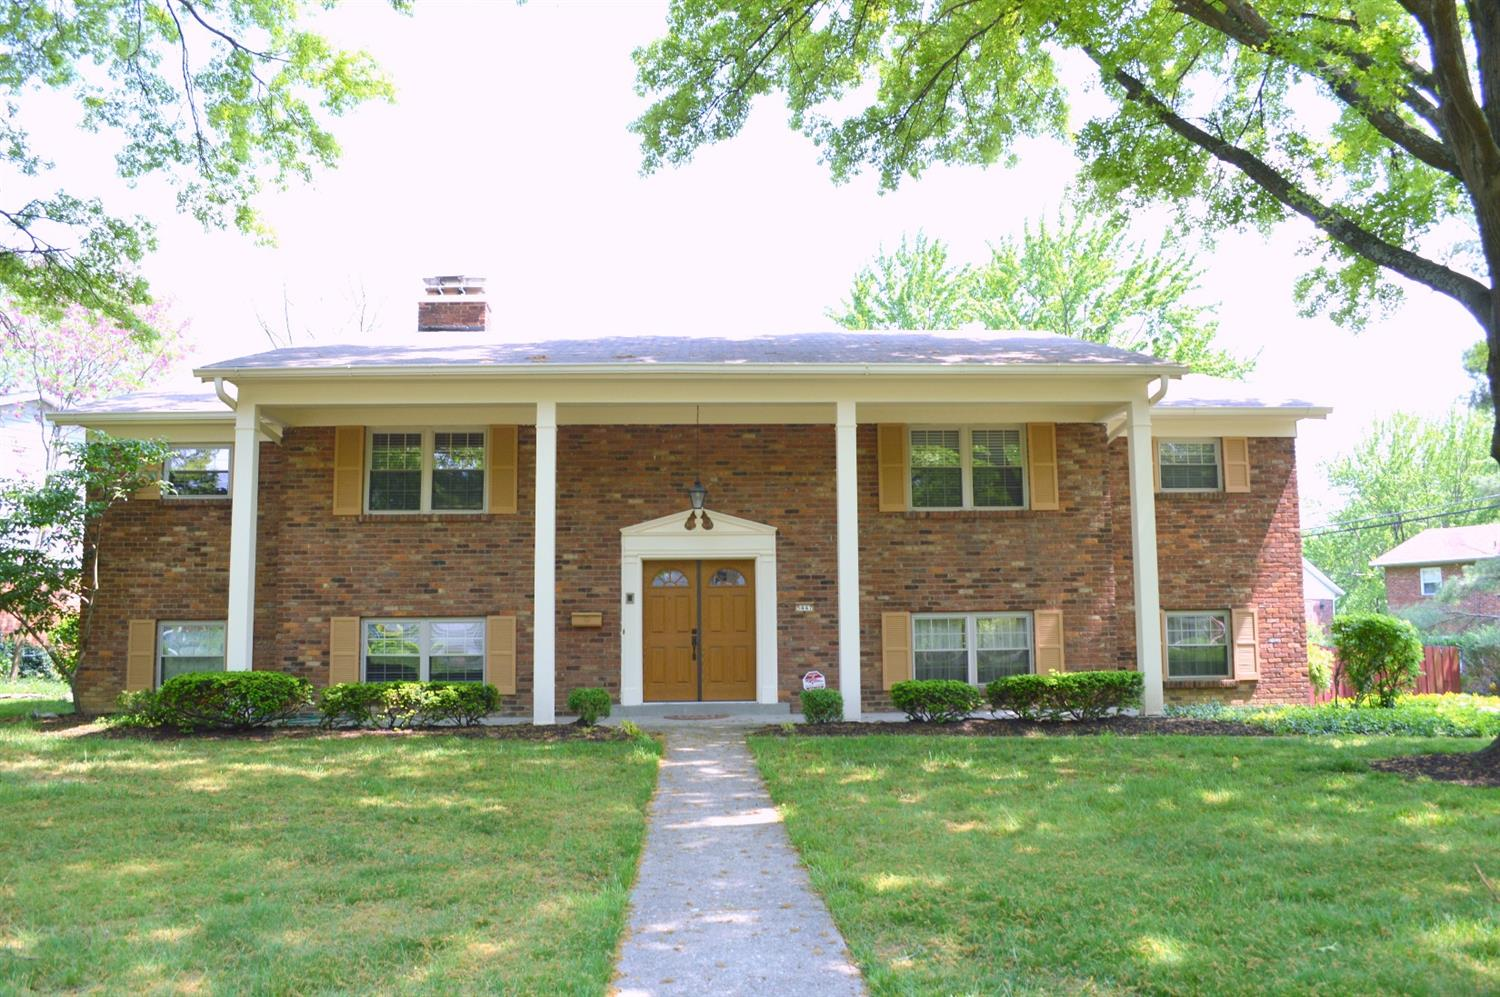 5447 Firethorn Ct Sycamore Twp., OH